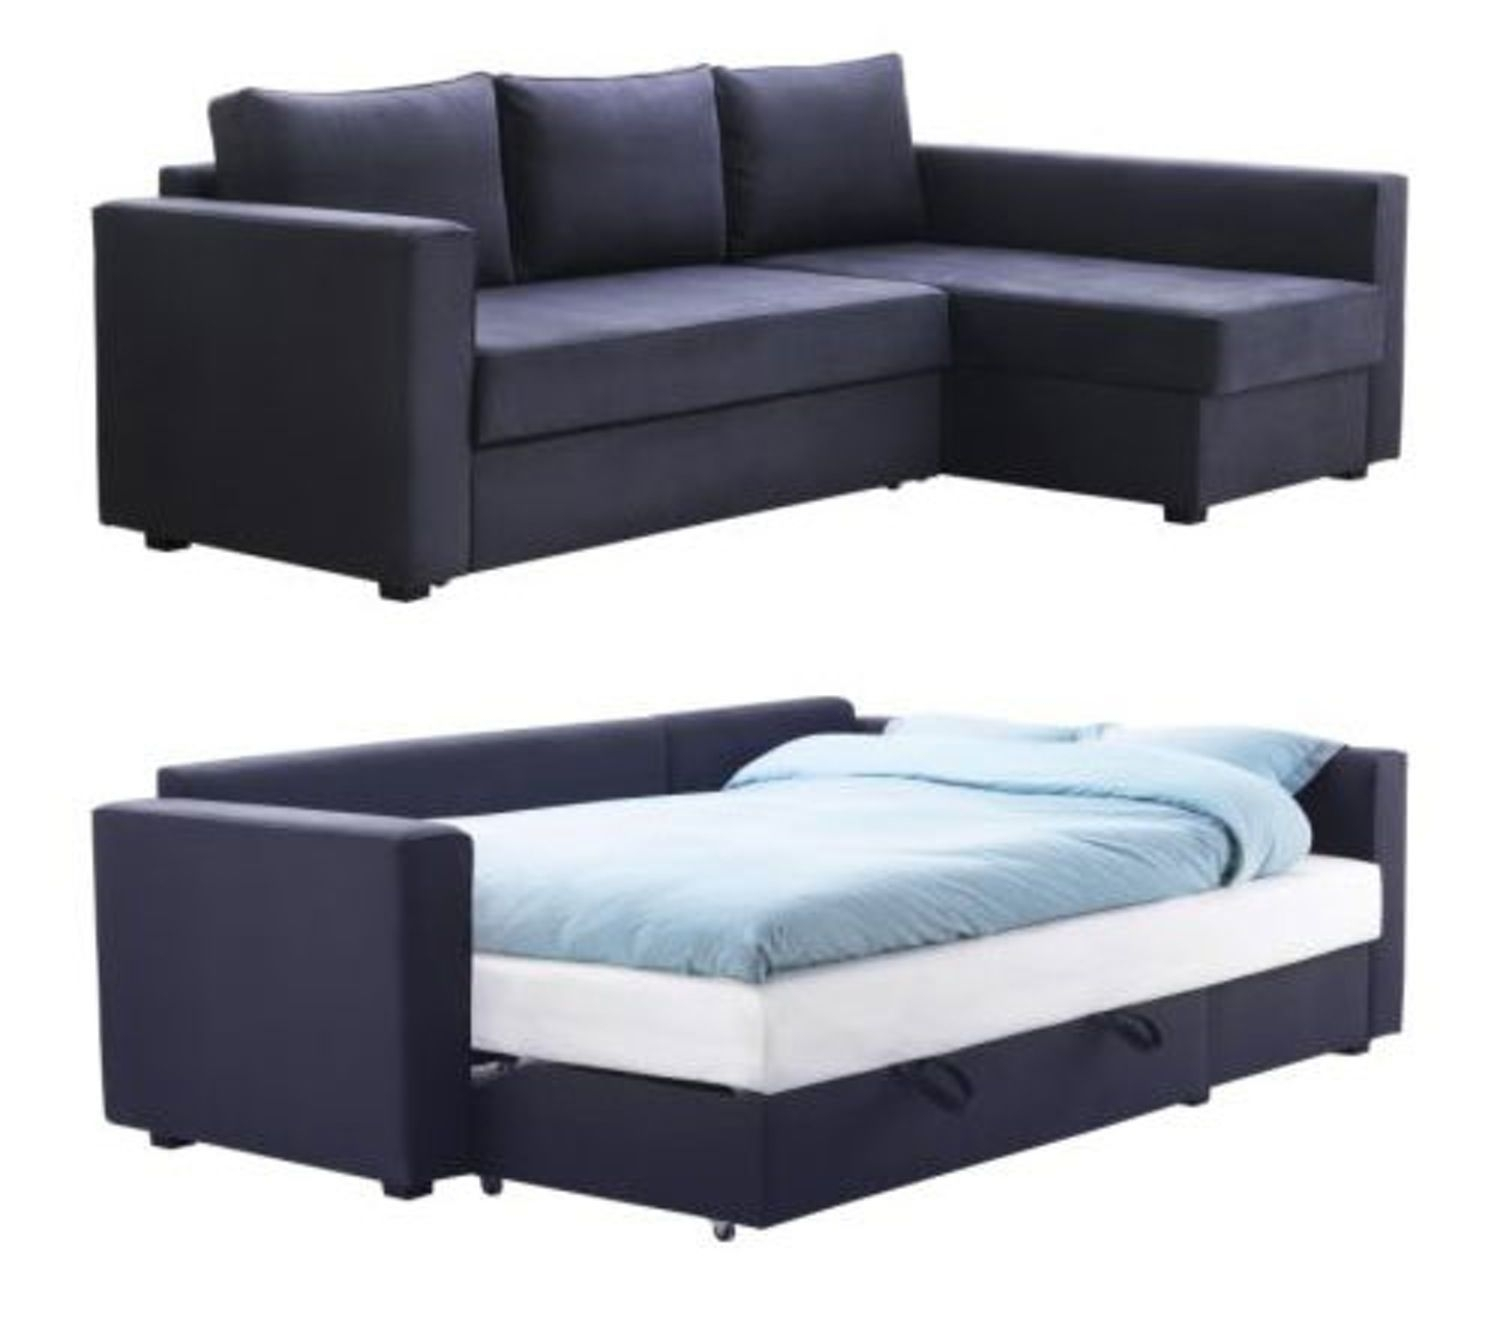 Picture of: Modular Sleeper Sofa Ideas On Foter